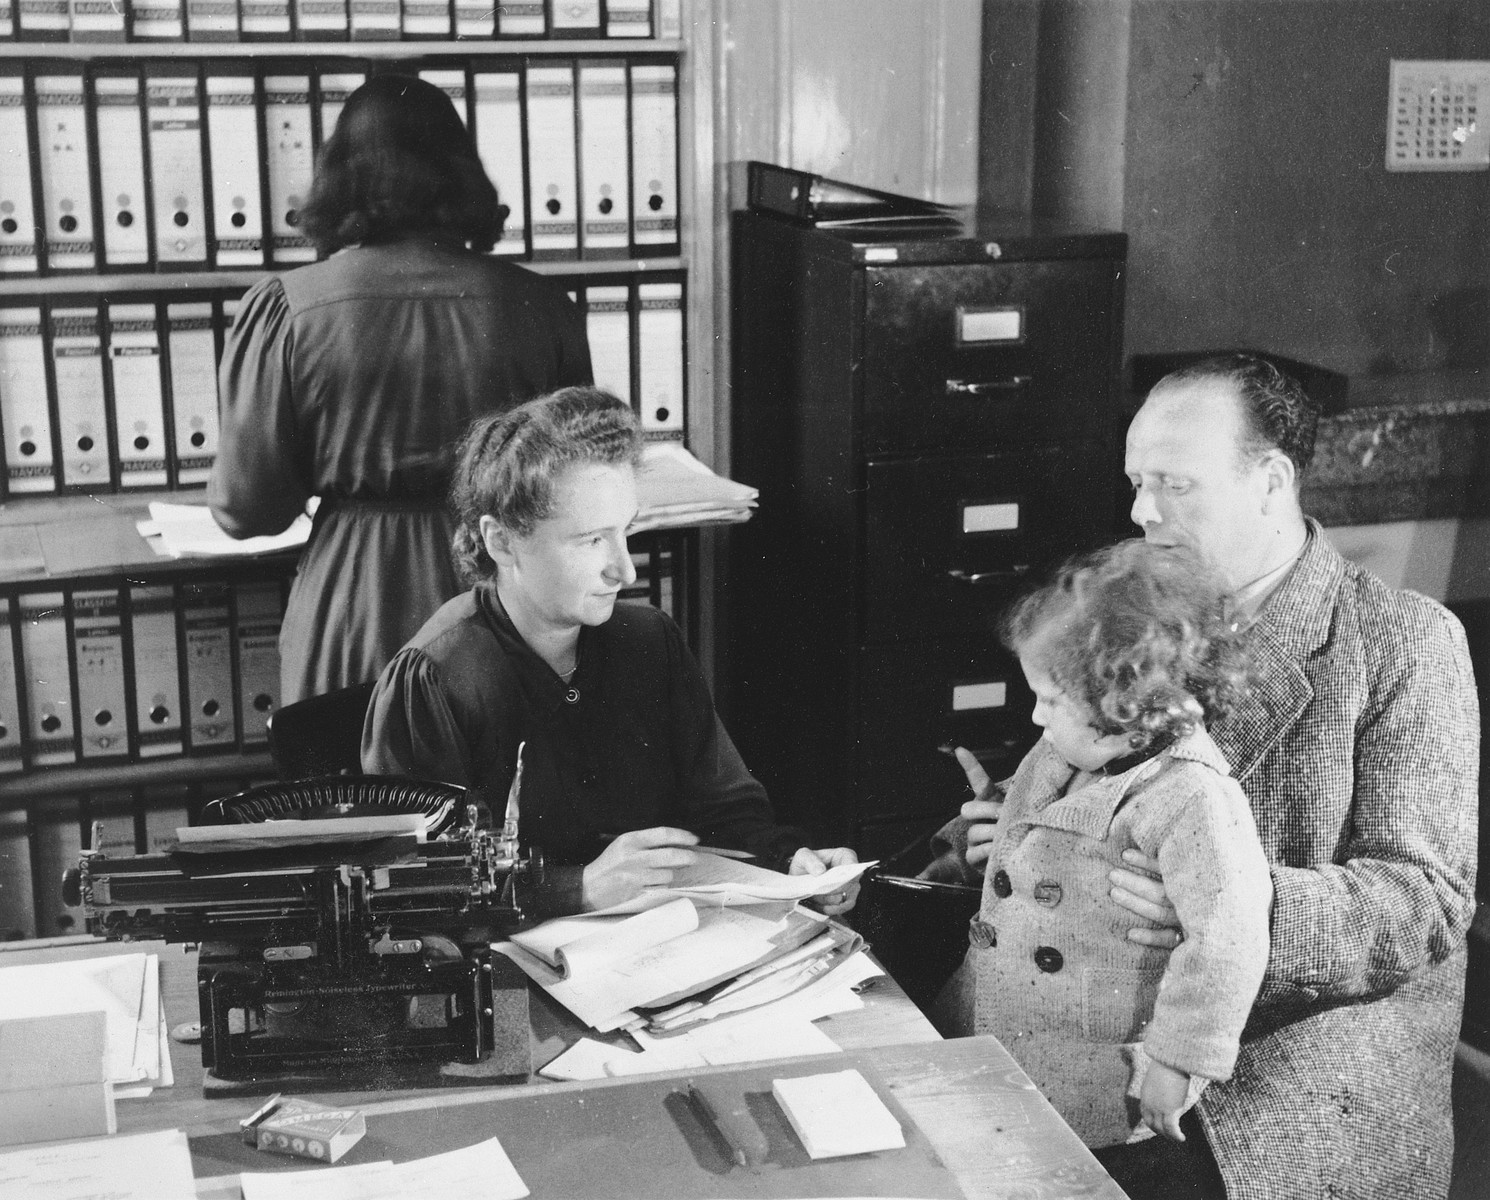 A woman, herself a refugee from France, assists a gentleman with a young child on his lap, in the offices of Secours aux Refugies in Geneva, Switzerland.  Seated at the desk is Ines Limot.